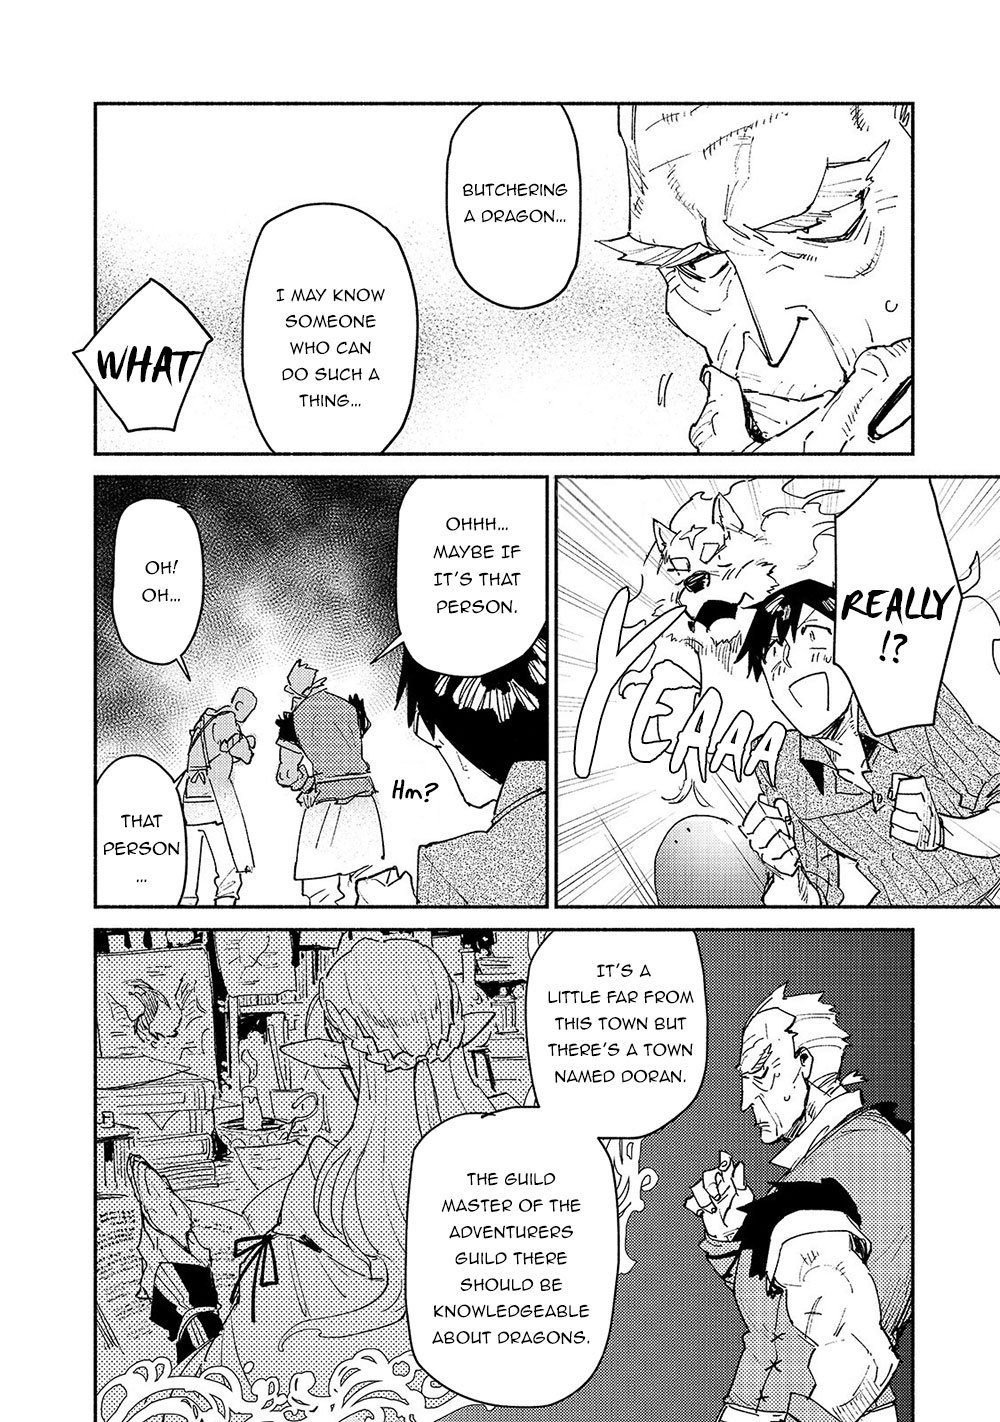 Manga Regarding the Display of an Outrageous Skill Which Has Incredible Powers - Chapter 33 Page 9